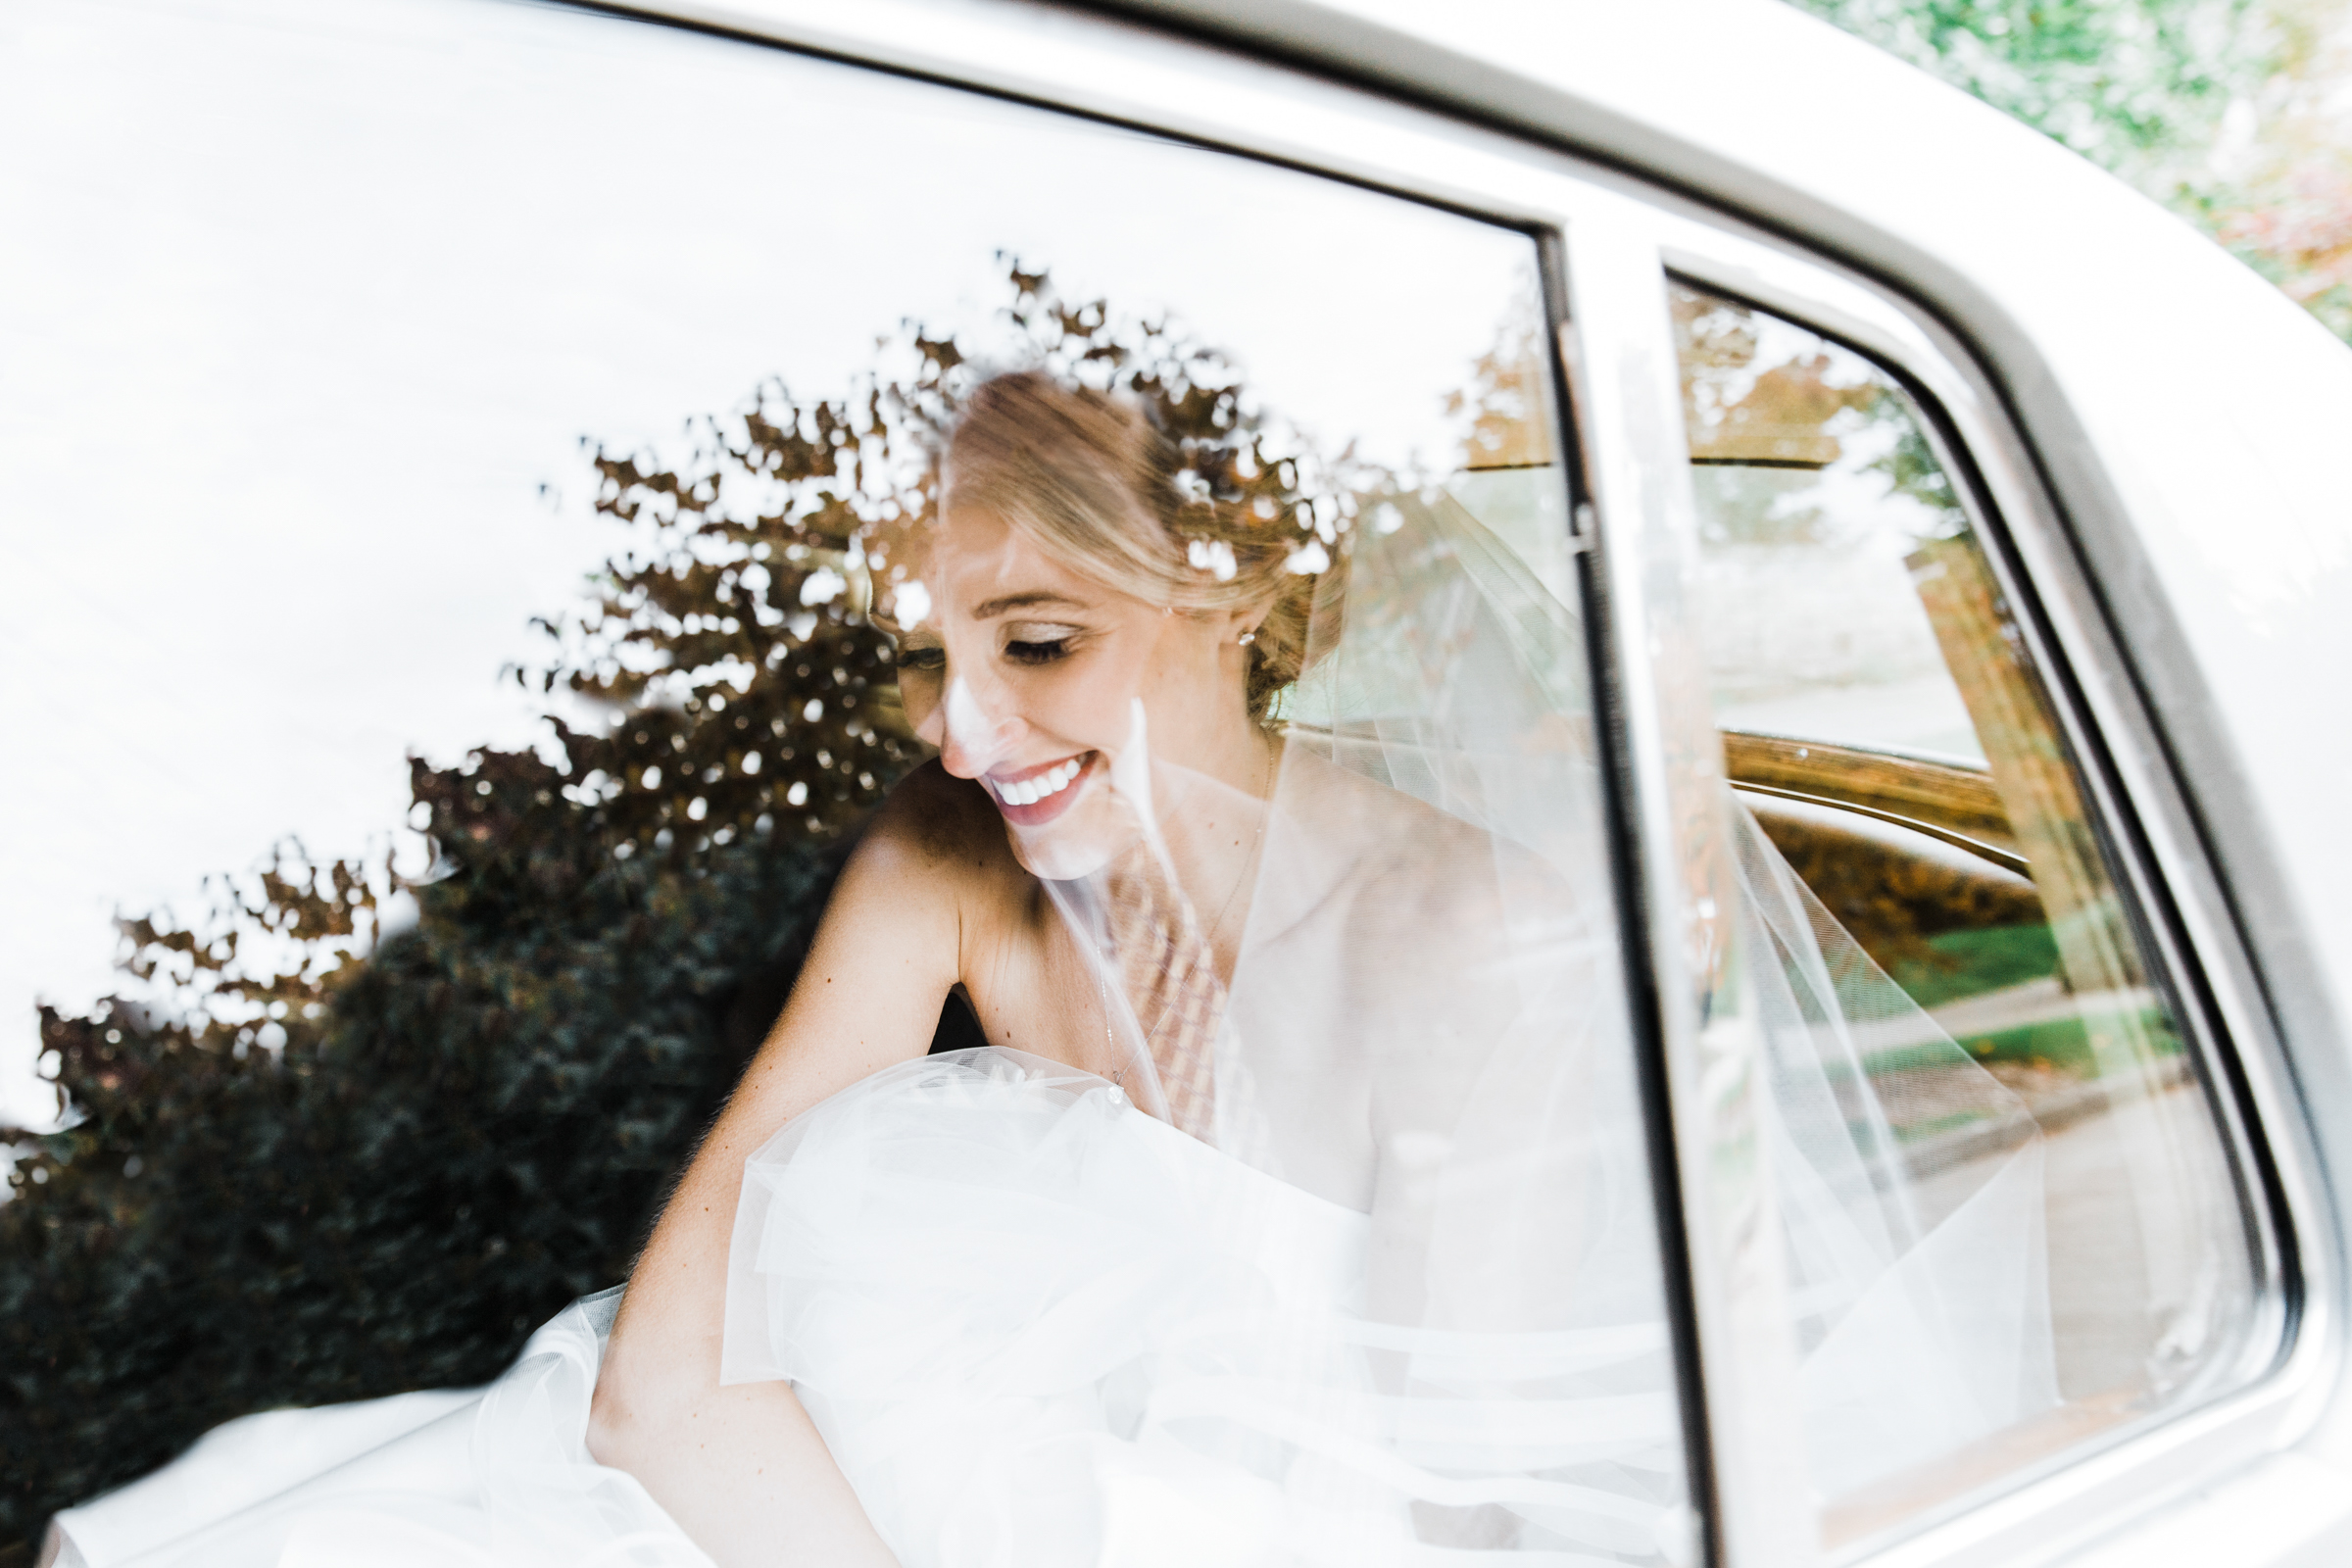 Happy bride wearing tulle in back of white limousine - photo by Stephanie Cristalli Photography